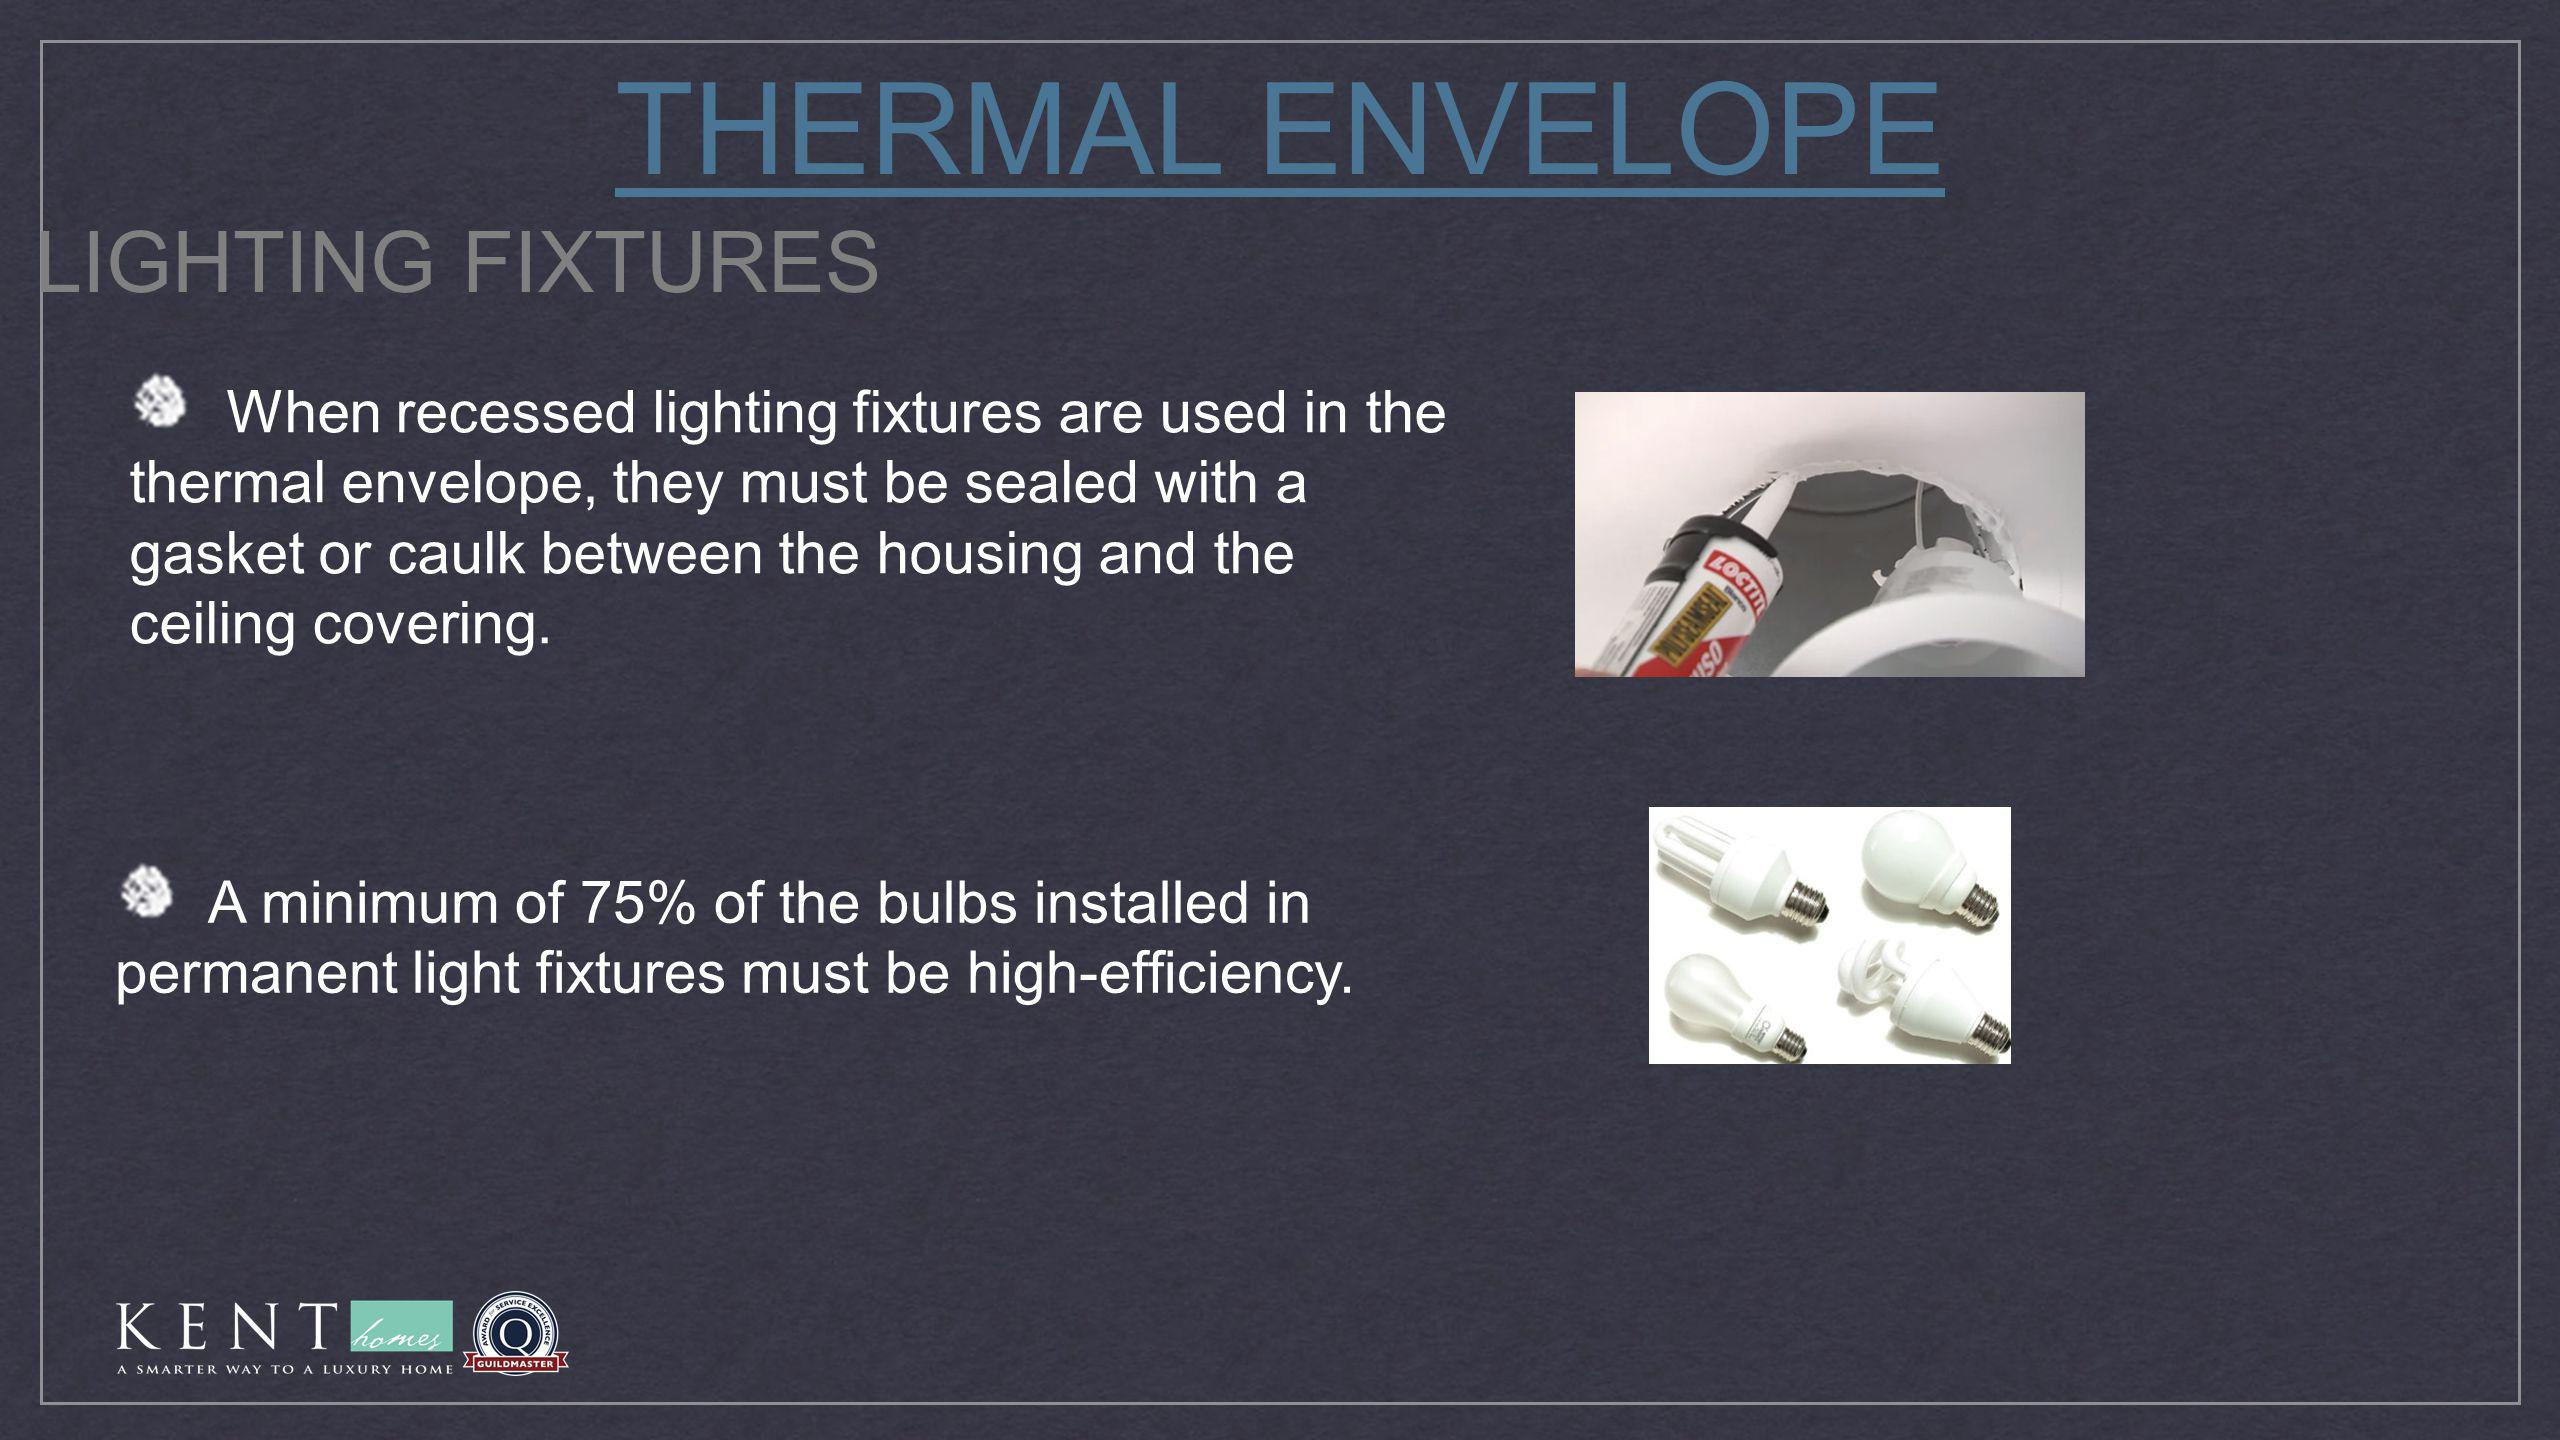 THERMAL ENVELOPE LIGHTING FIXTURES When recessed lighting fixtures are used in the thermal envelope, they must be sealed with a gasket or caulk betwee